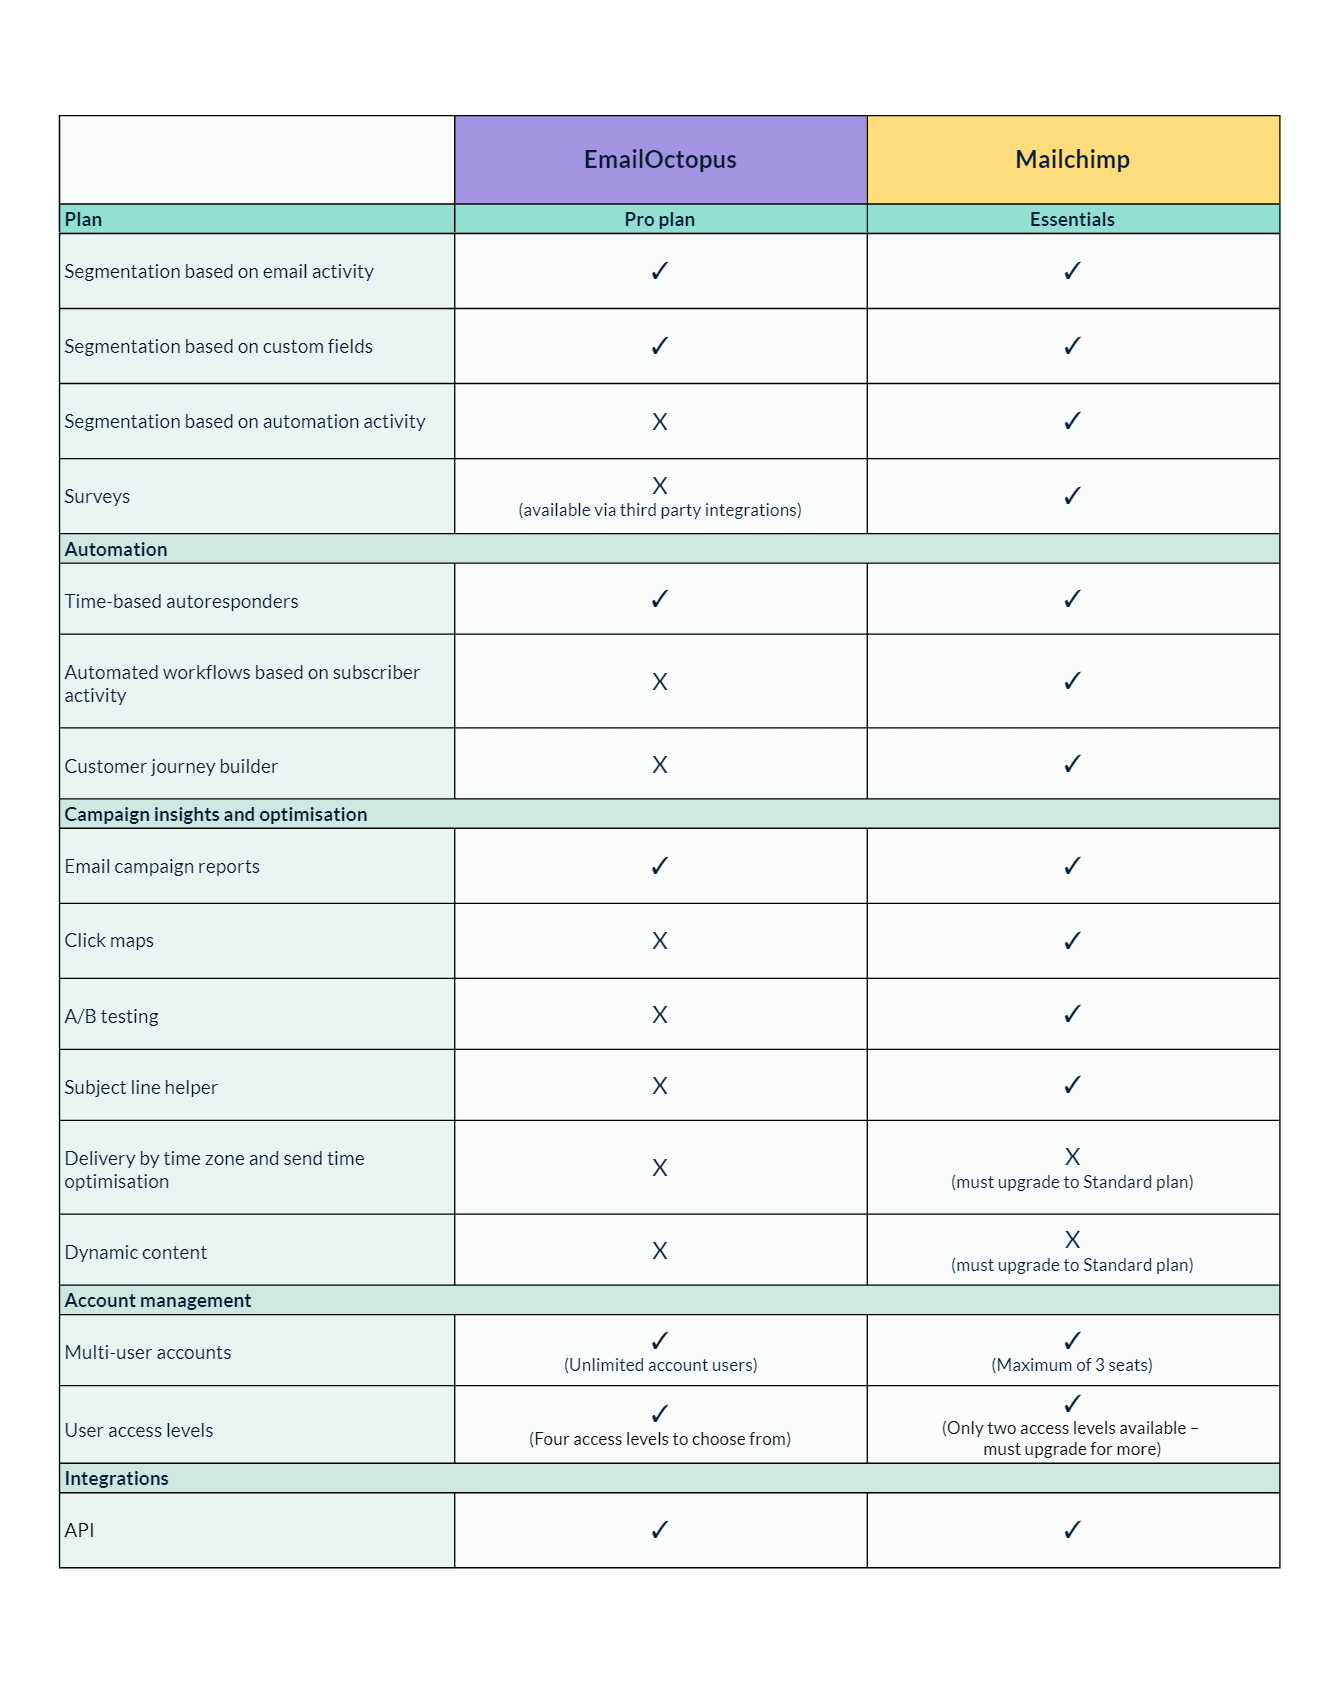 Email octopus vs Mailchimp in detailed